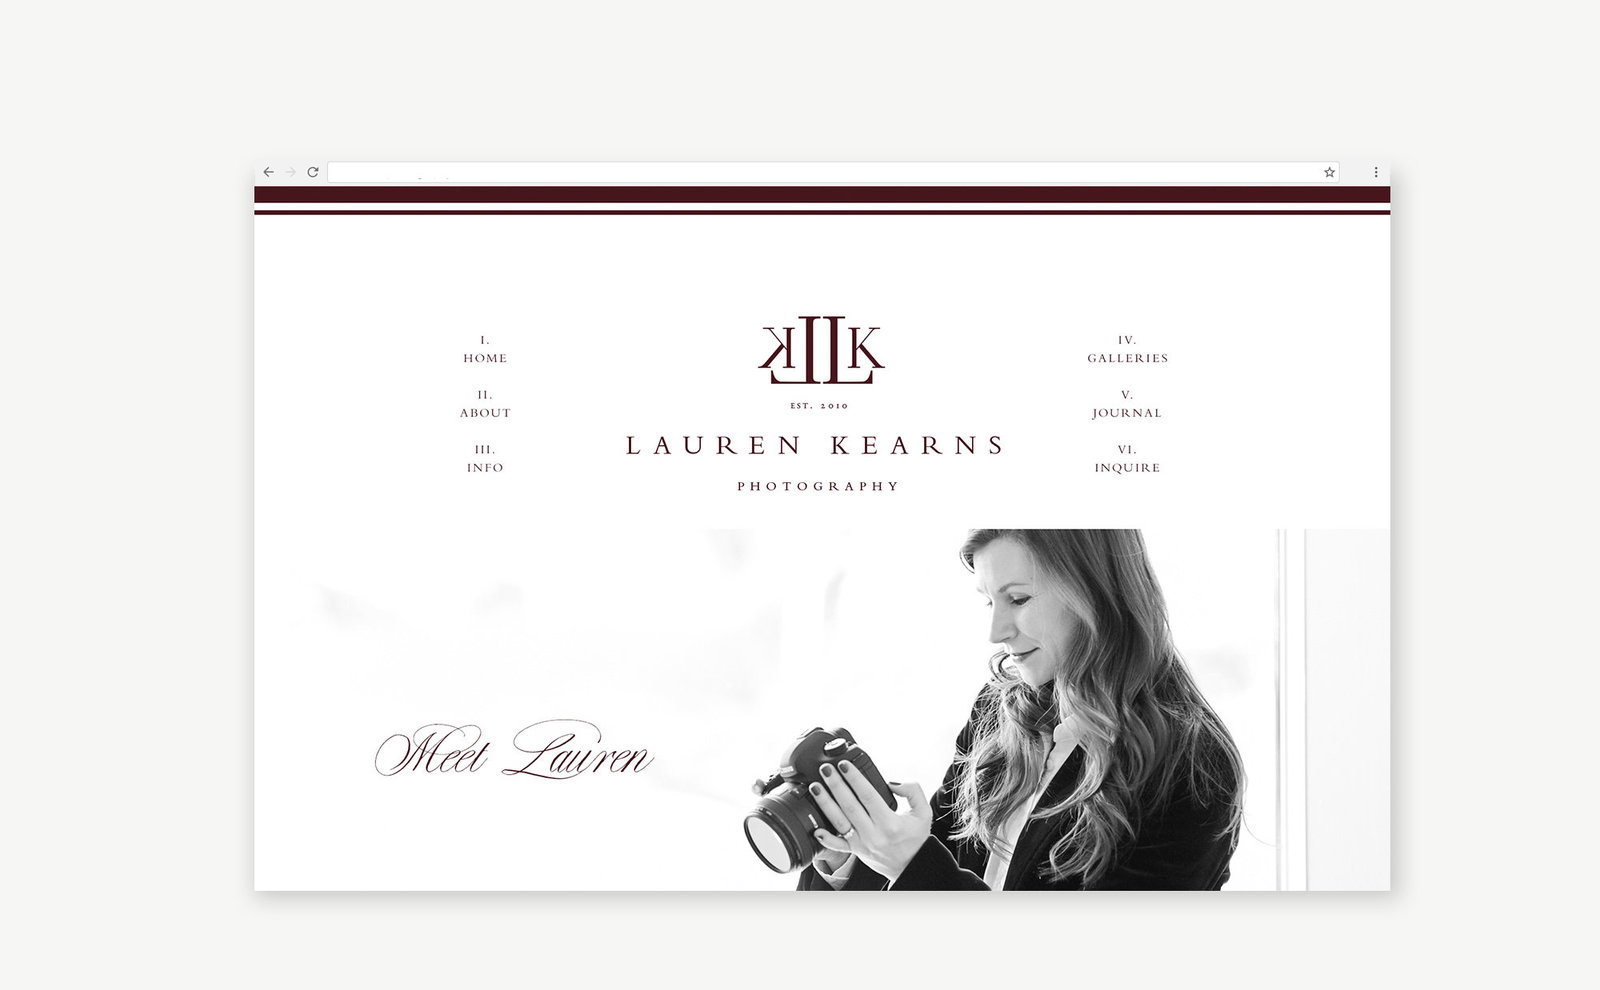 branding-for-photographers-logo-design-showit-website-lauren-kearns-05